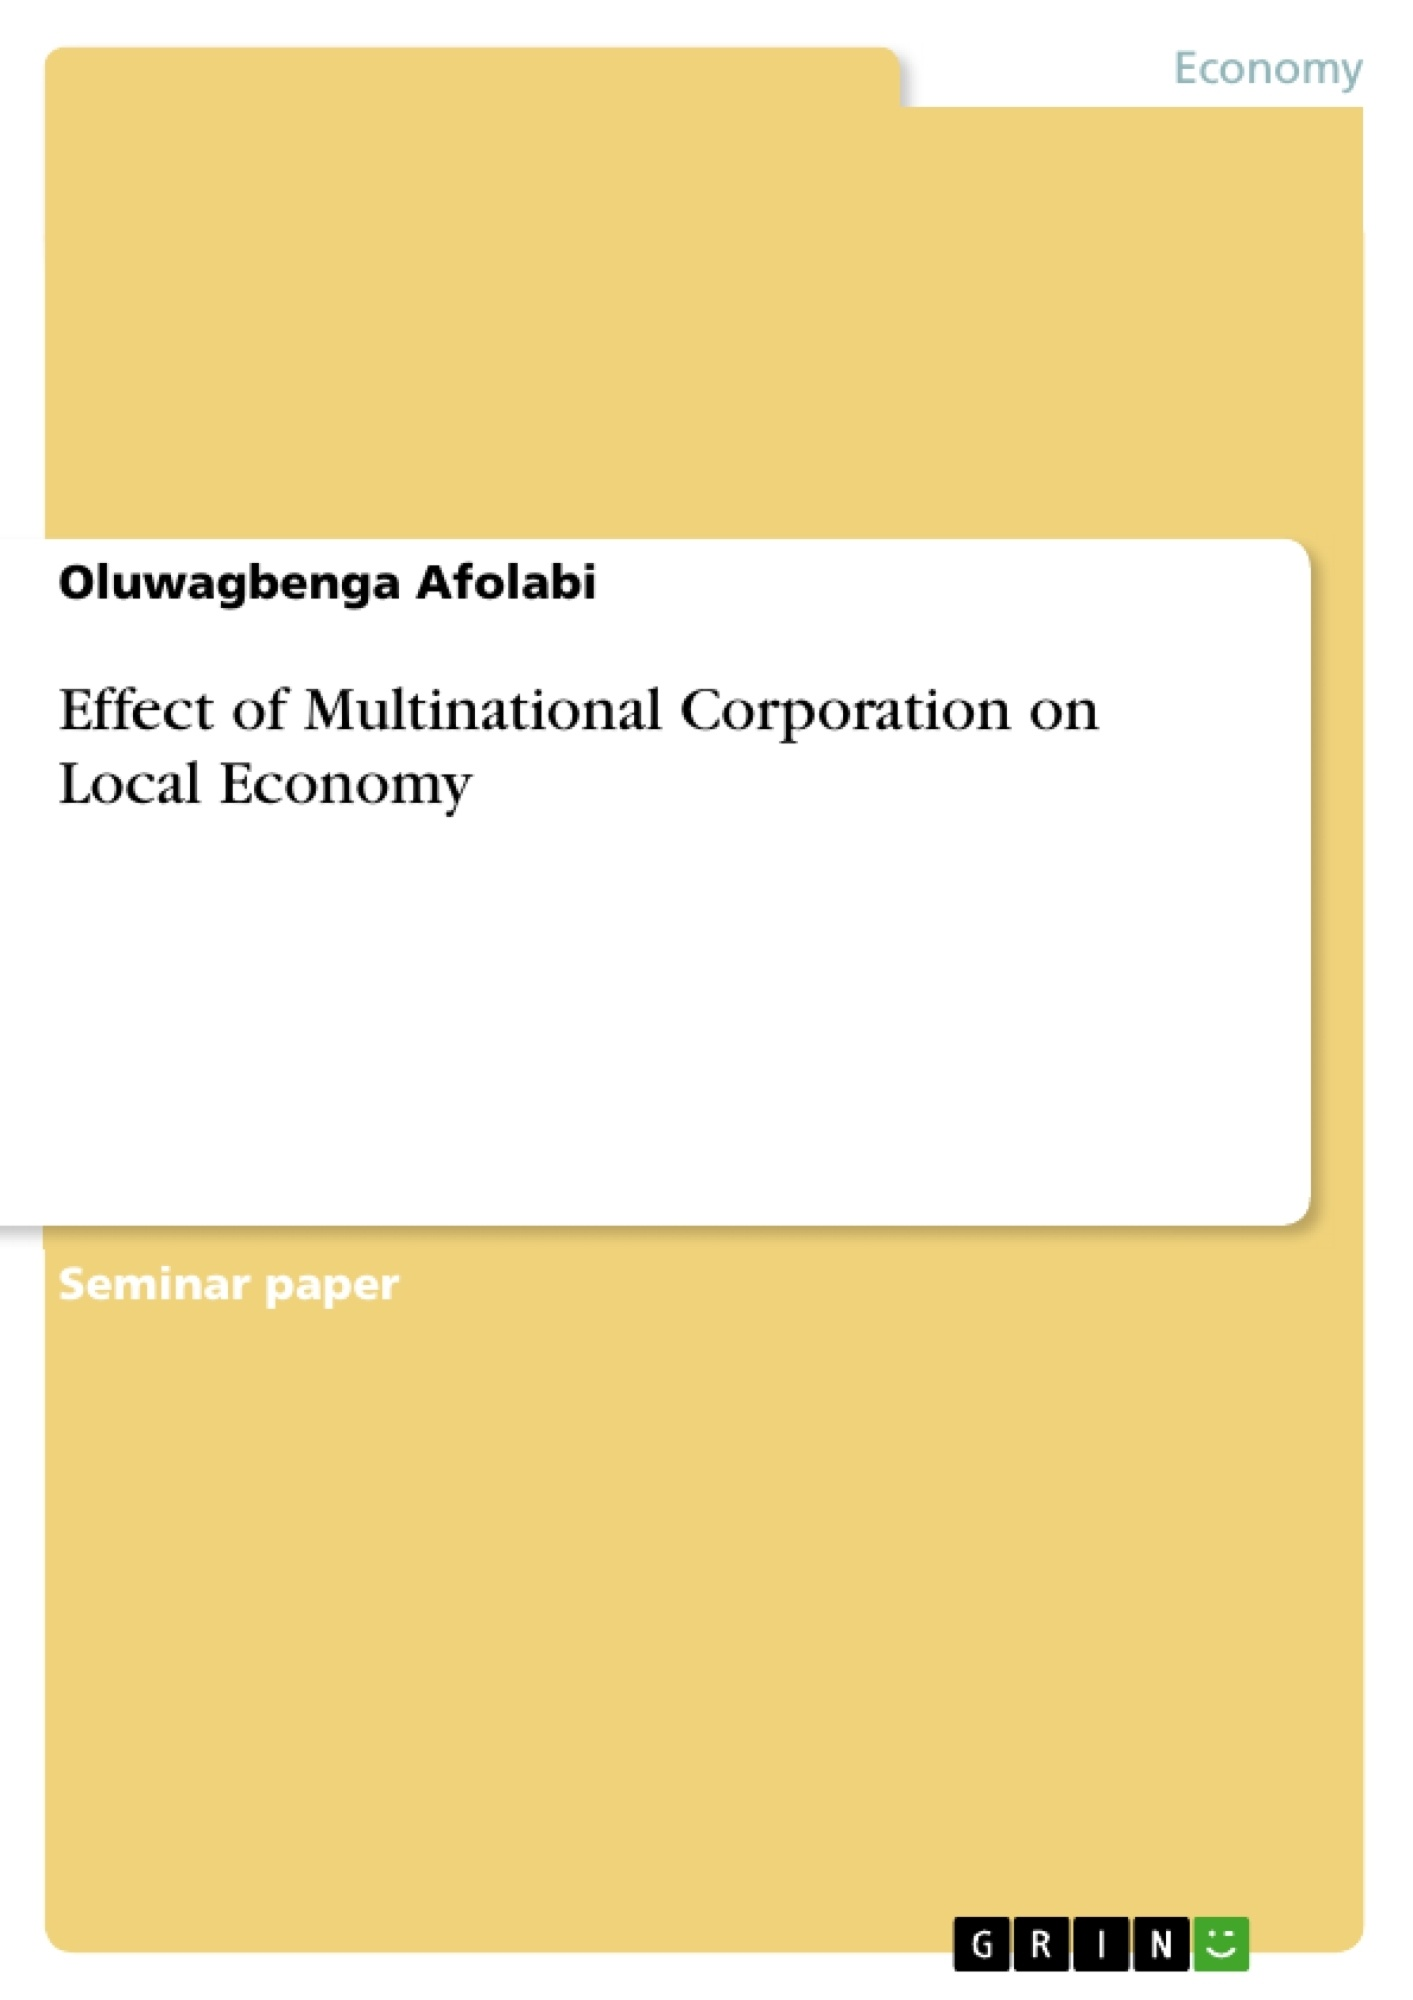 Title: Effect of Multinational Corporation on Local Economy